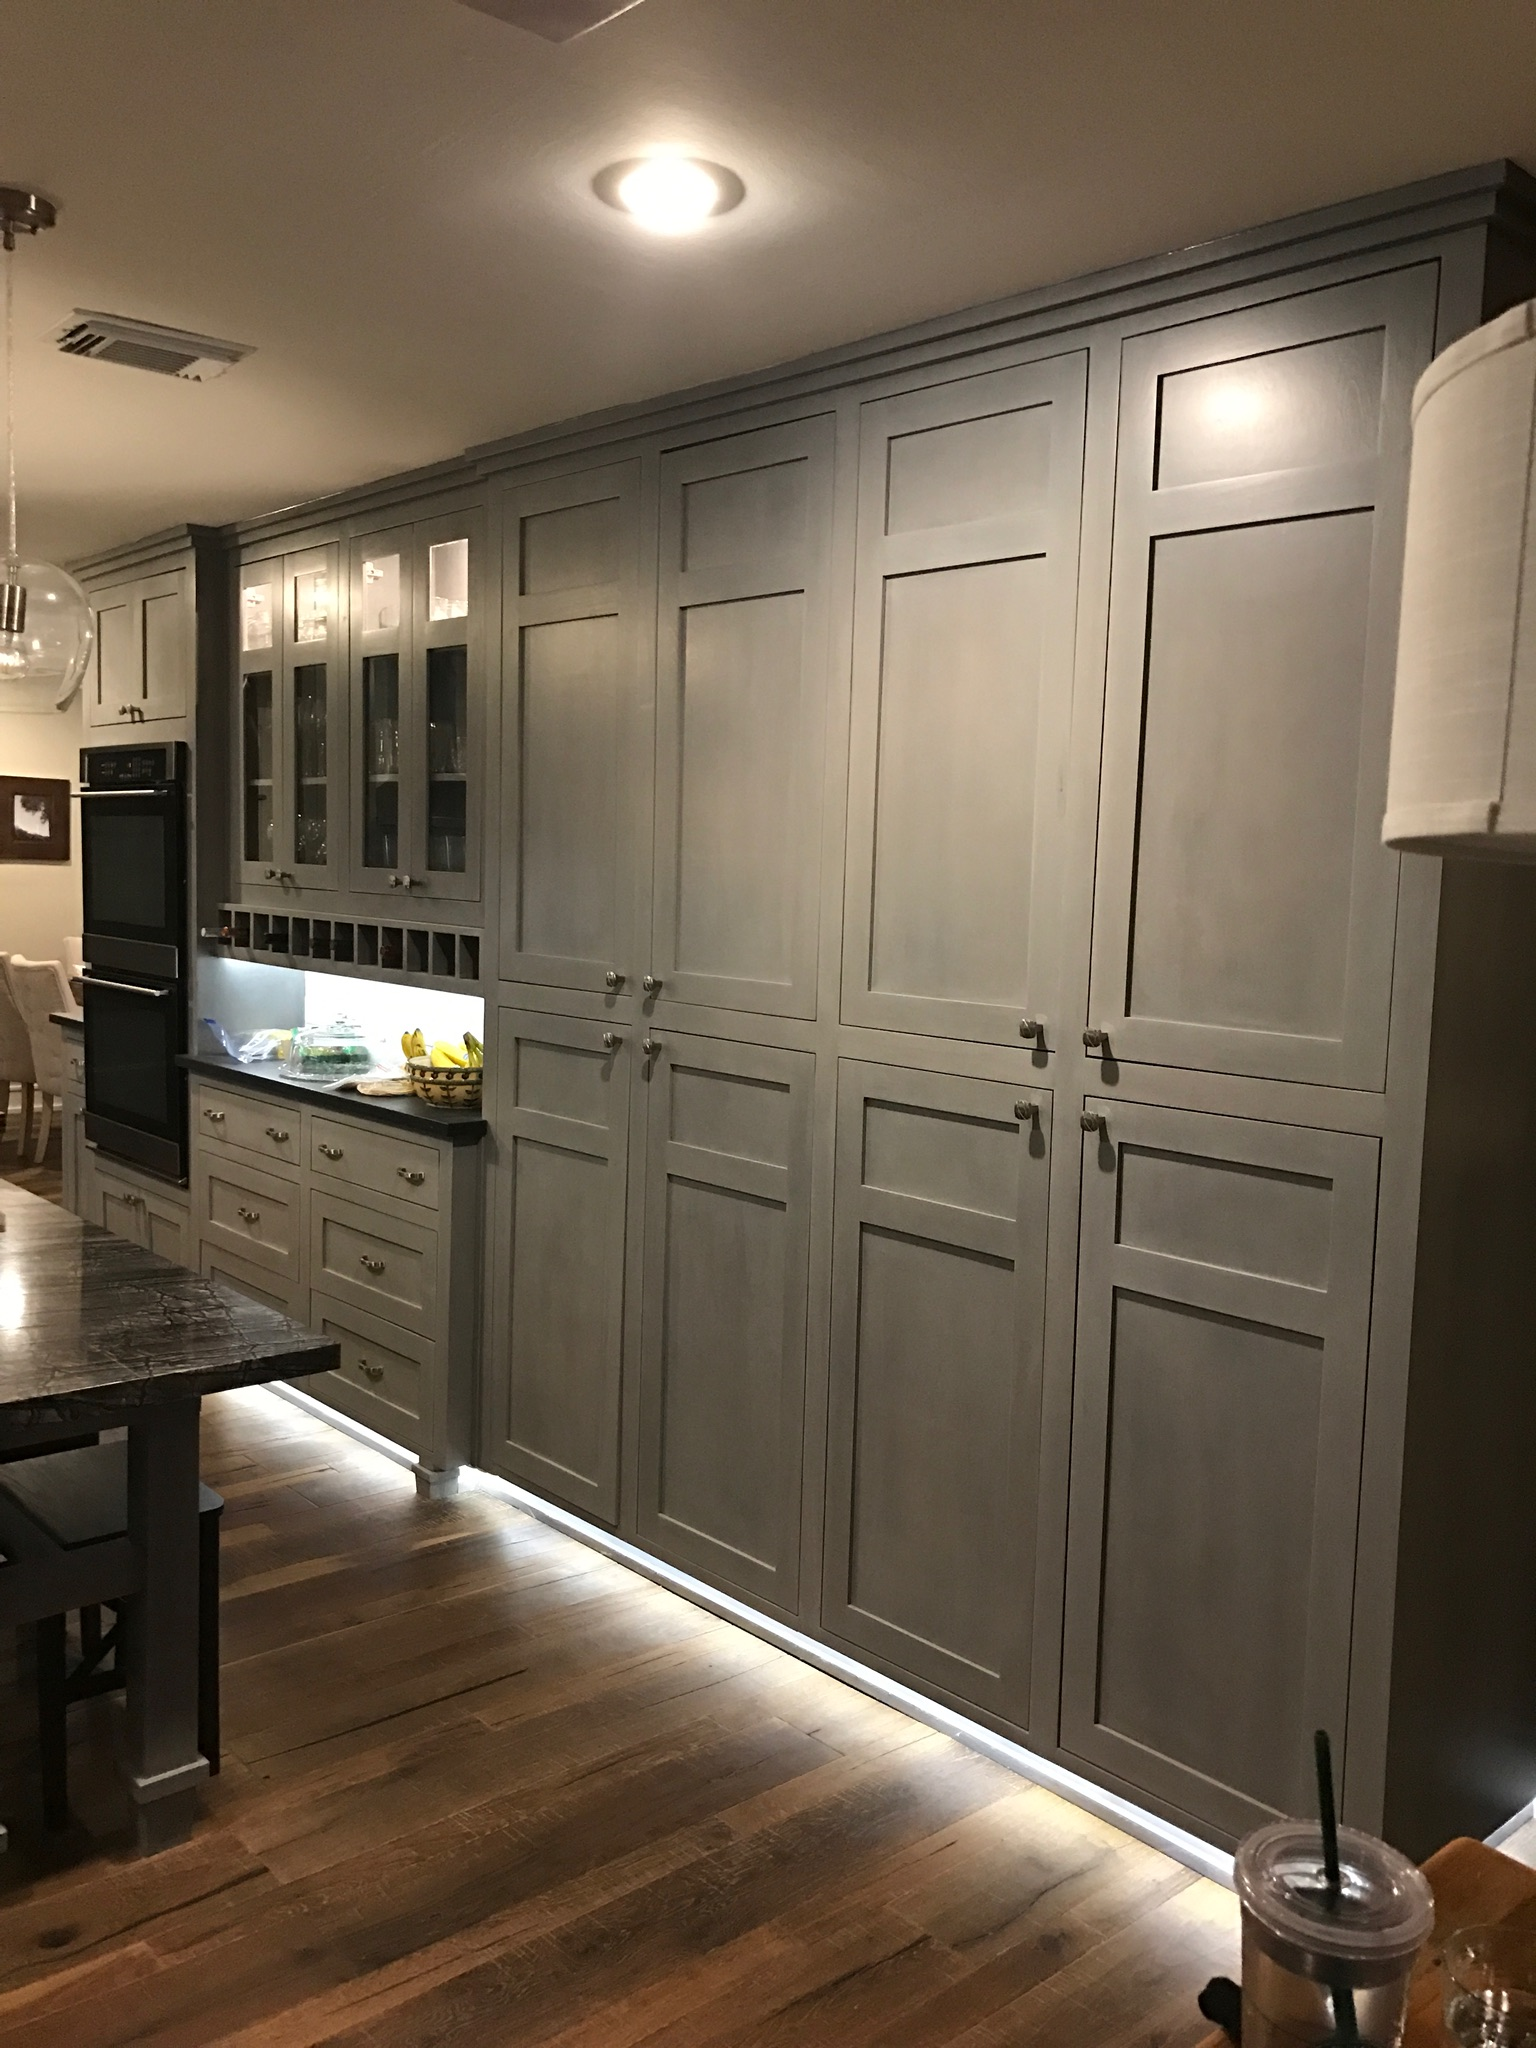 Professional Cabinet Finisher Custom Stain Or Custom Paint New Cabinet Finishing Services Magnifico Cabrehab Finish Refinish Remodel